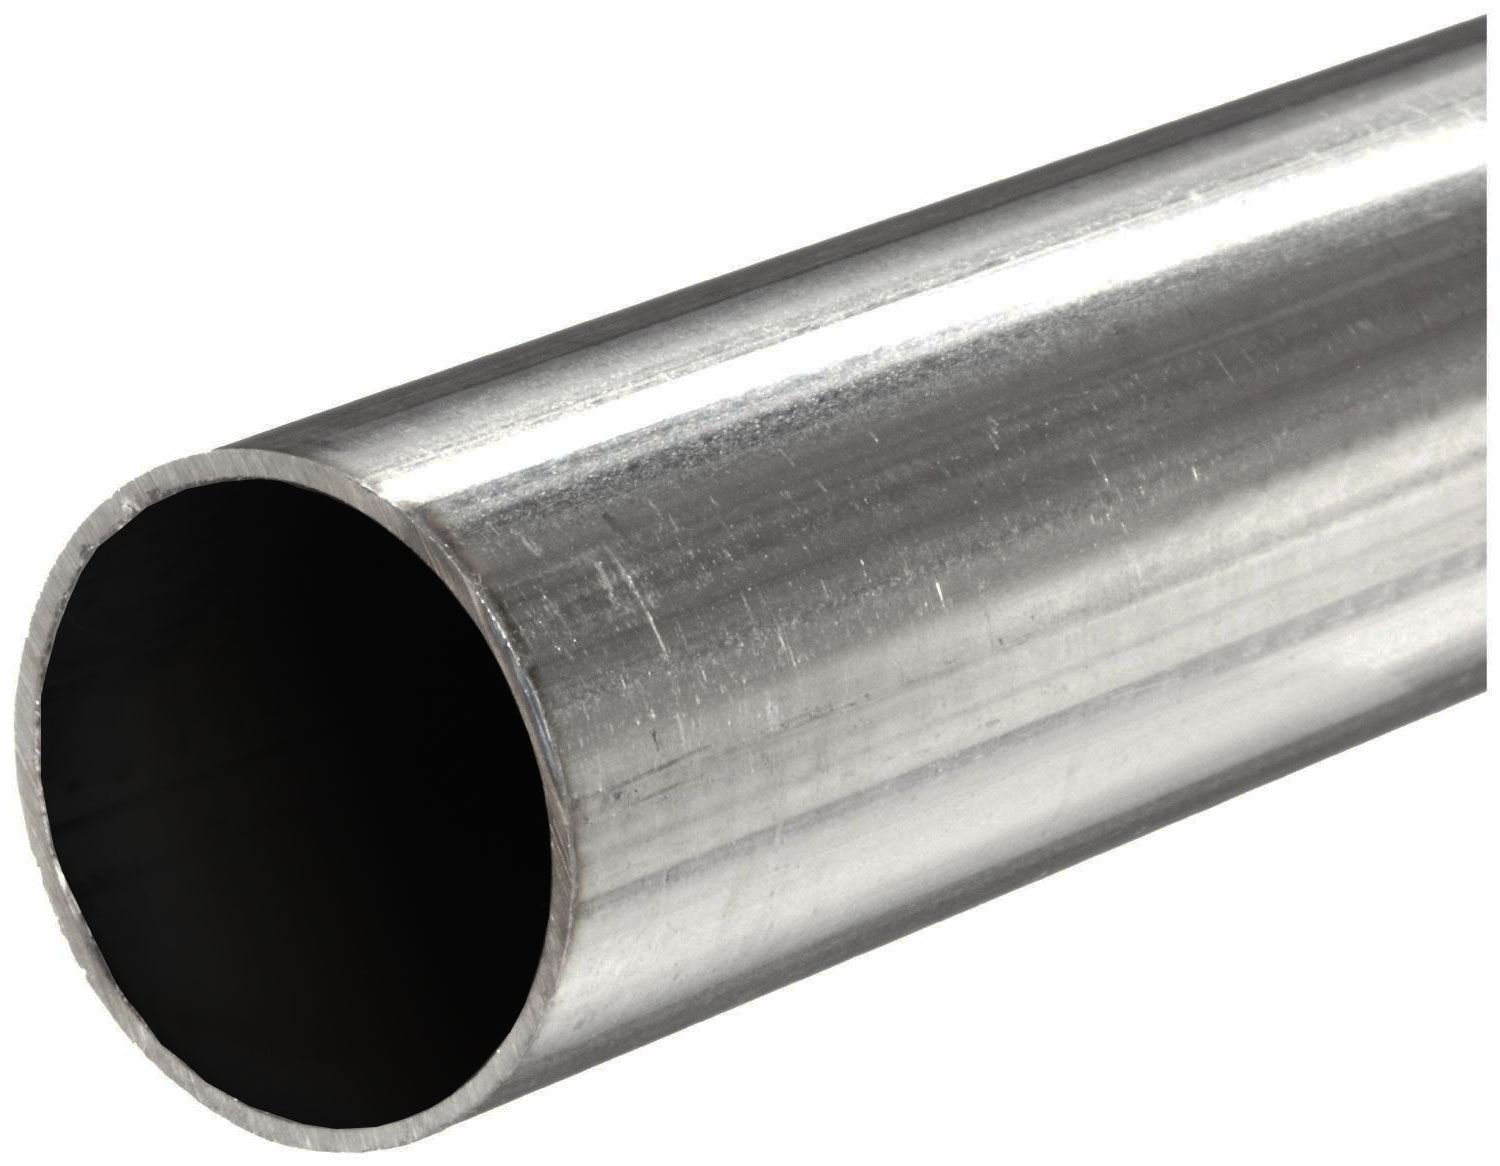 Online Metal Supply 316 Stainless Steel, Round Tube, OD: 1.000 (1 inch), Wall: 0.083 inch, Length: 12 inches, Seamless